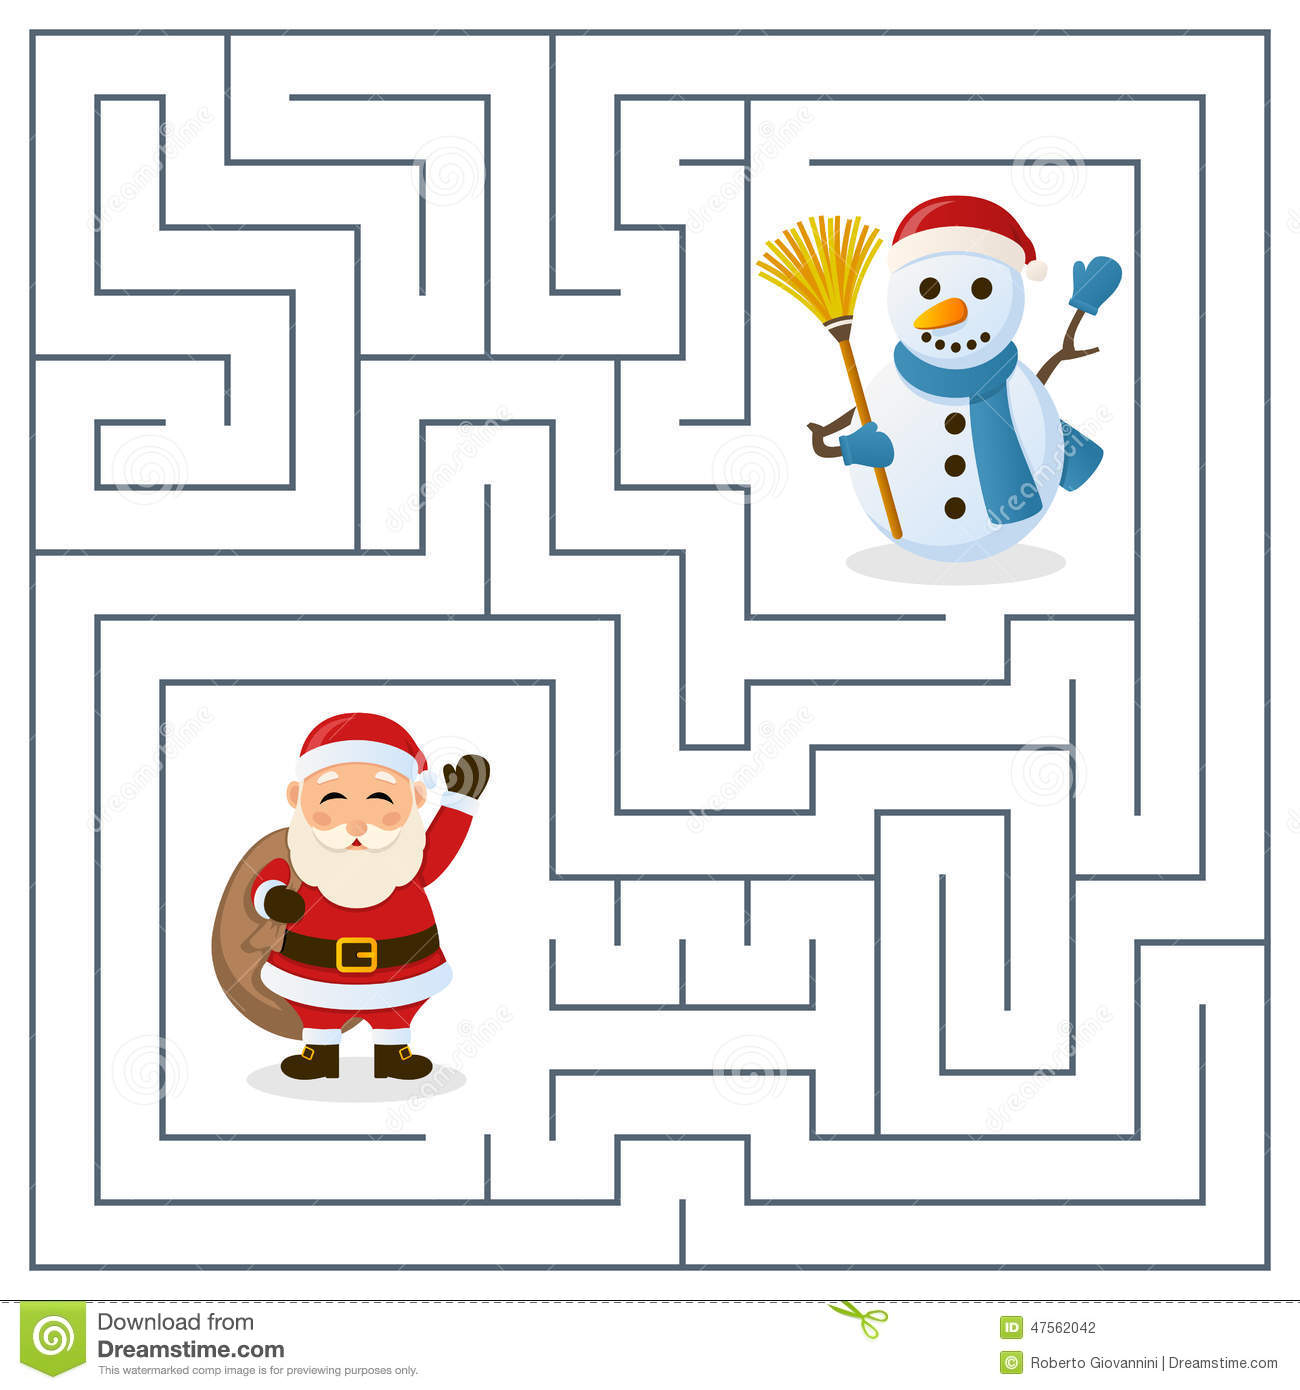 Santa Claus Amp Snowman Maze For Kids Stock Vector